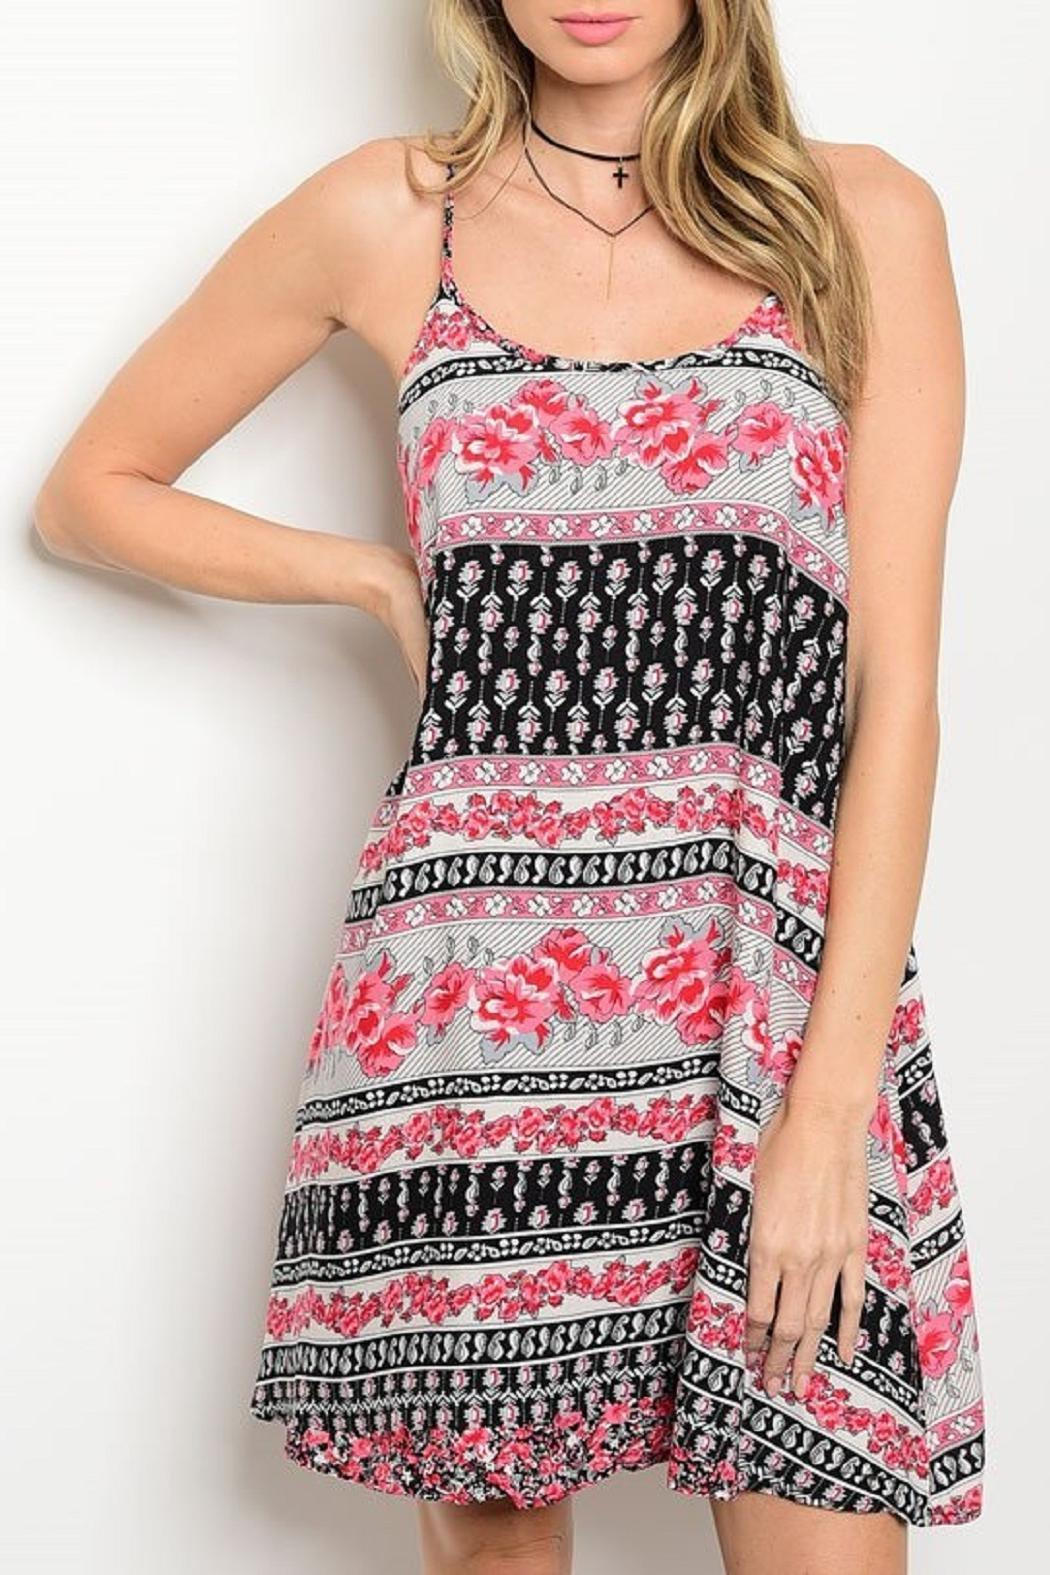 Adore Clothes & More Floral Summer Dress - Main Image